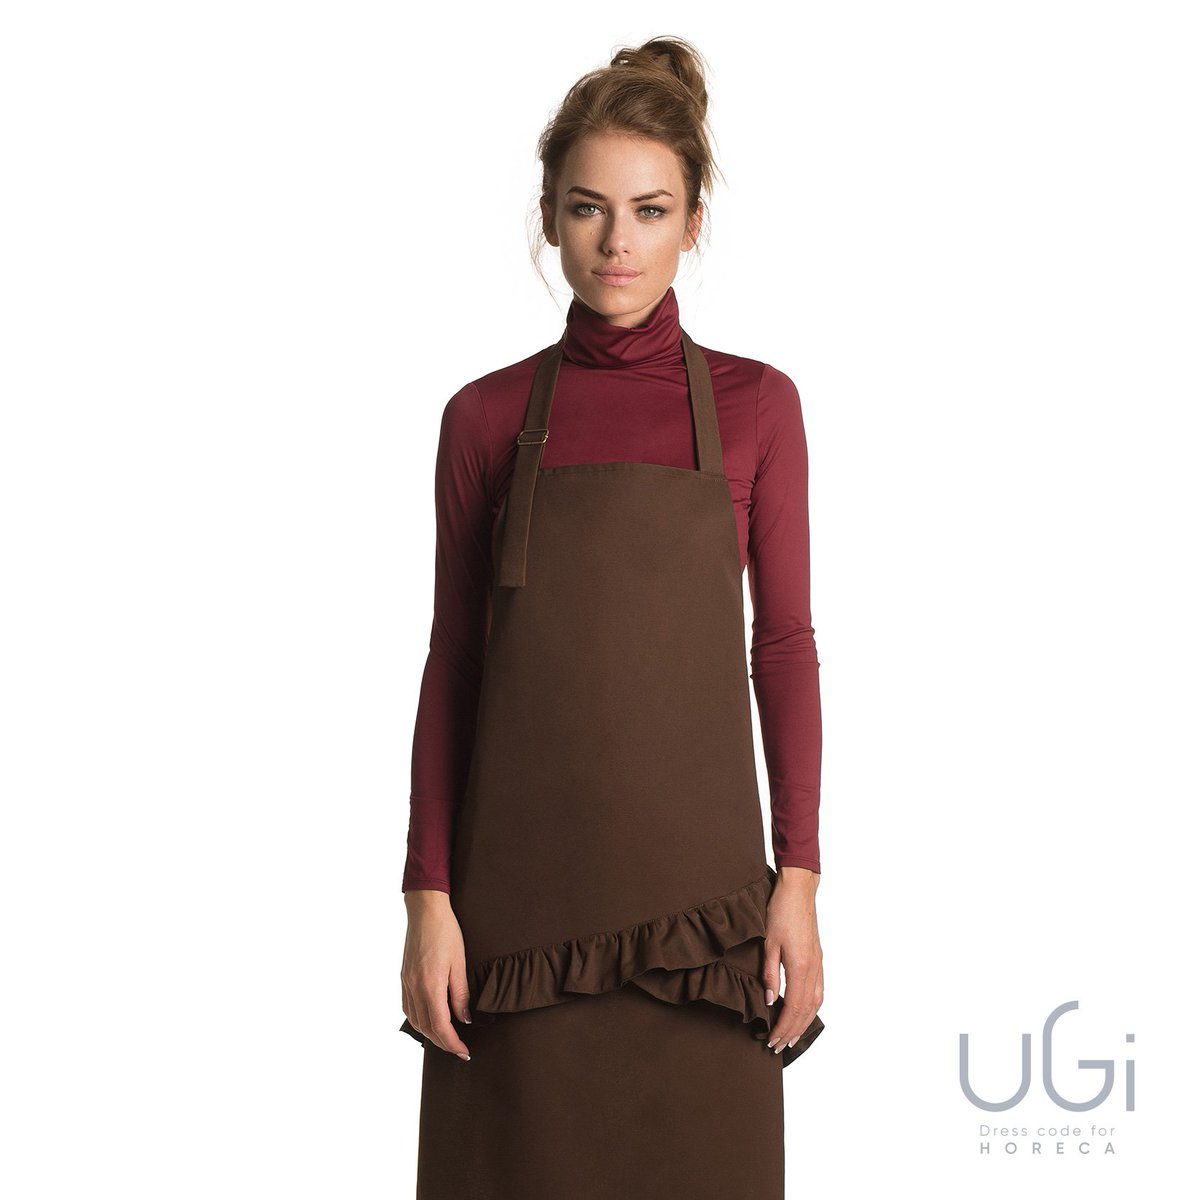 Ugi Code On Twitter Chocolate Mood Dressed Up In Brown Lily Apron From New Premium Collection For Horeca Chocolate Brownapron Catering Hospitality Uniform Workwear Chefwear Waiter Apron Aprons Elegantaprons Classicapron Apron